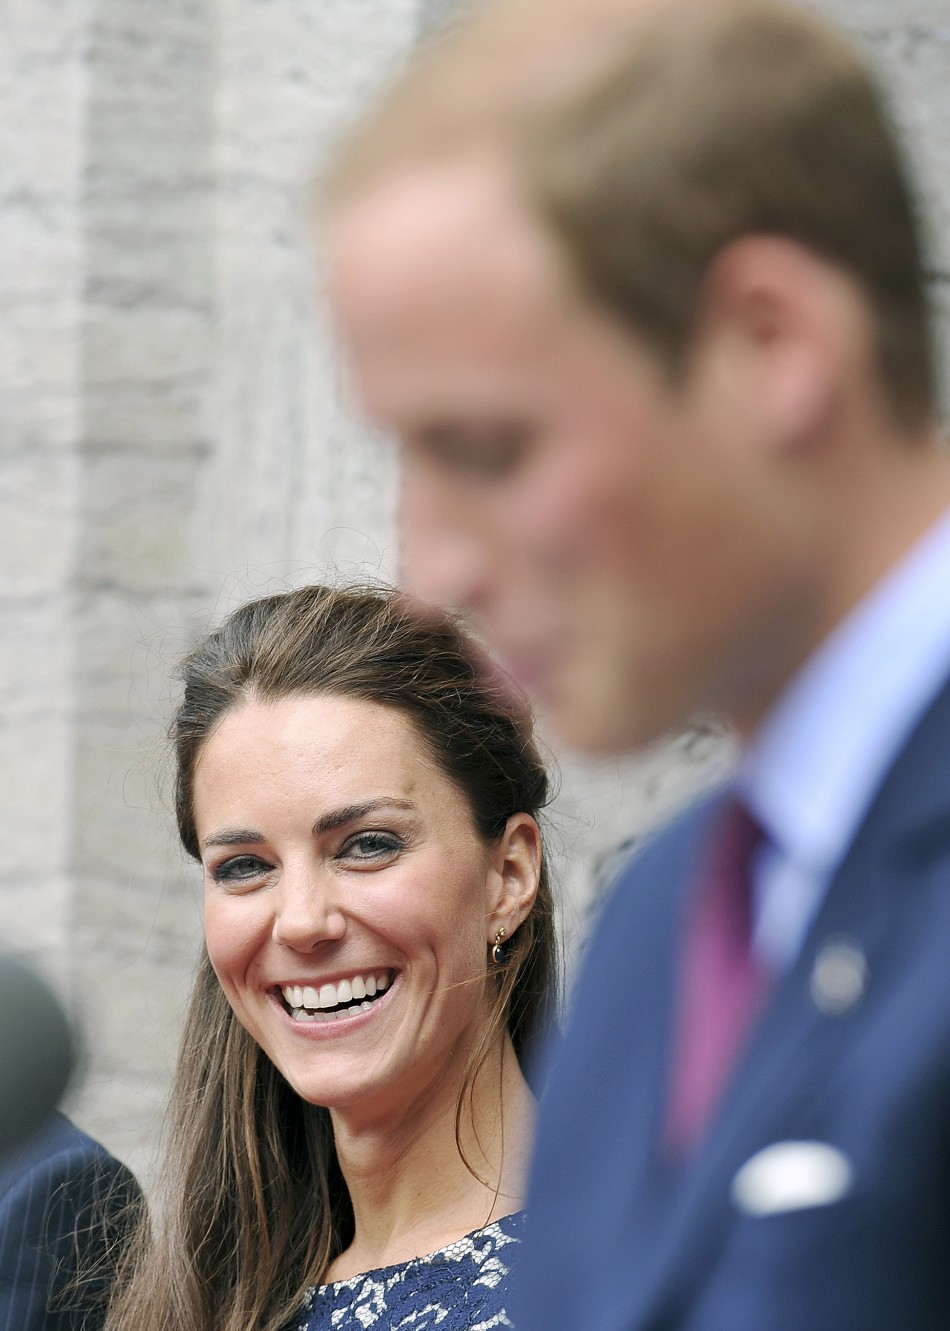 Britain's Catherine, Duchess of Cambridge laughs as her husband Prince William speaks outside the official residence of the Governor General of Canada, Rideau Hall in Ottawa